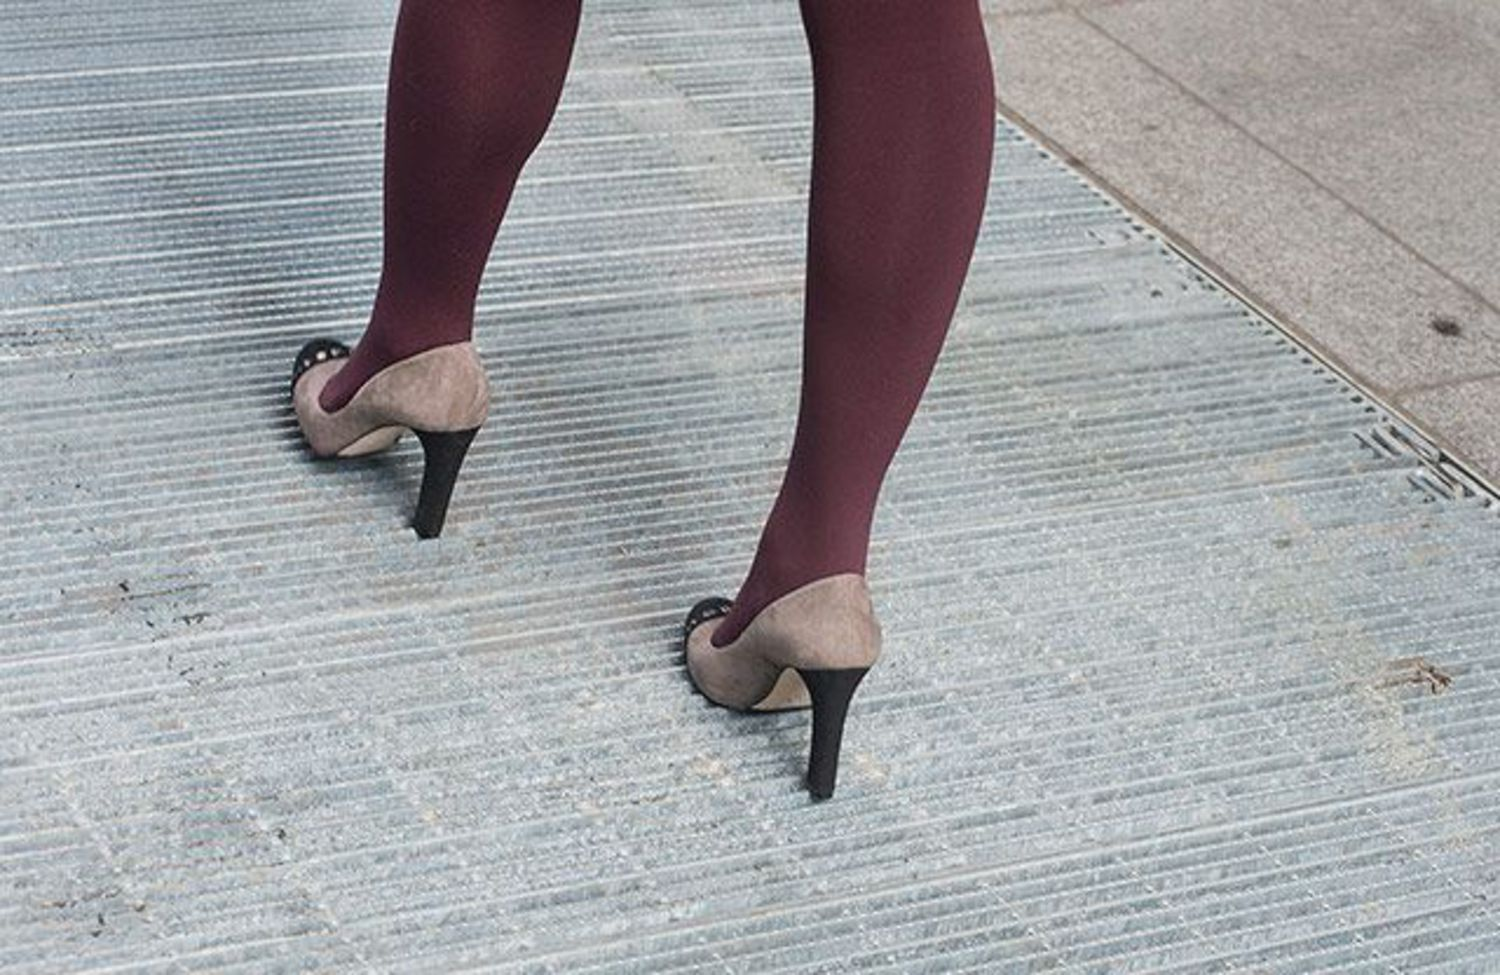 Heel-Friendly Subway Grates